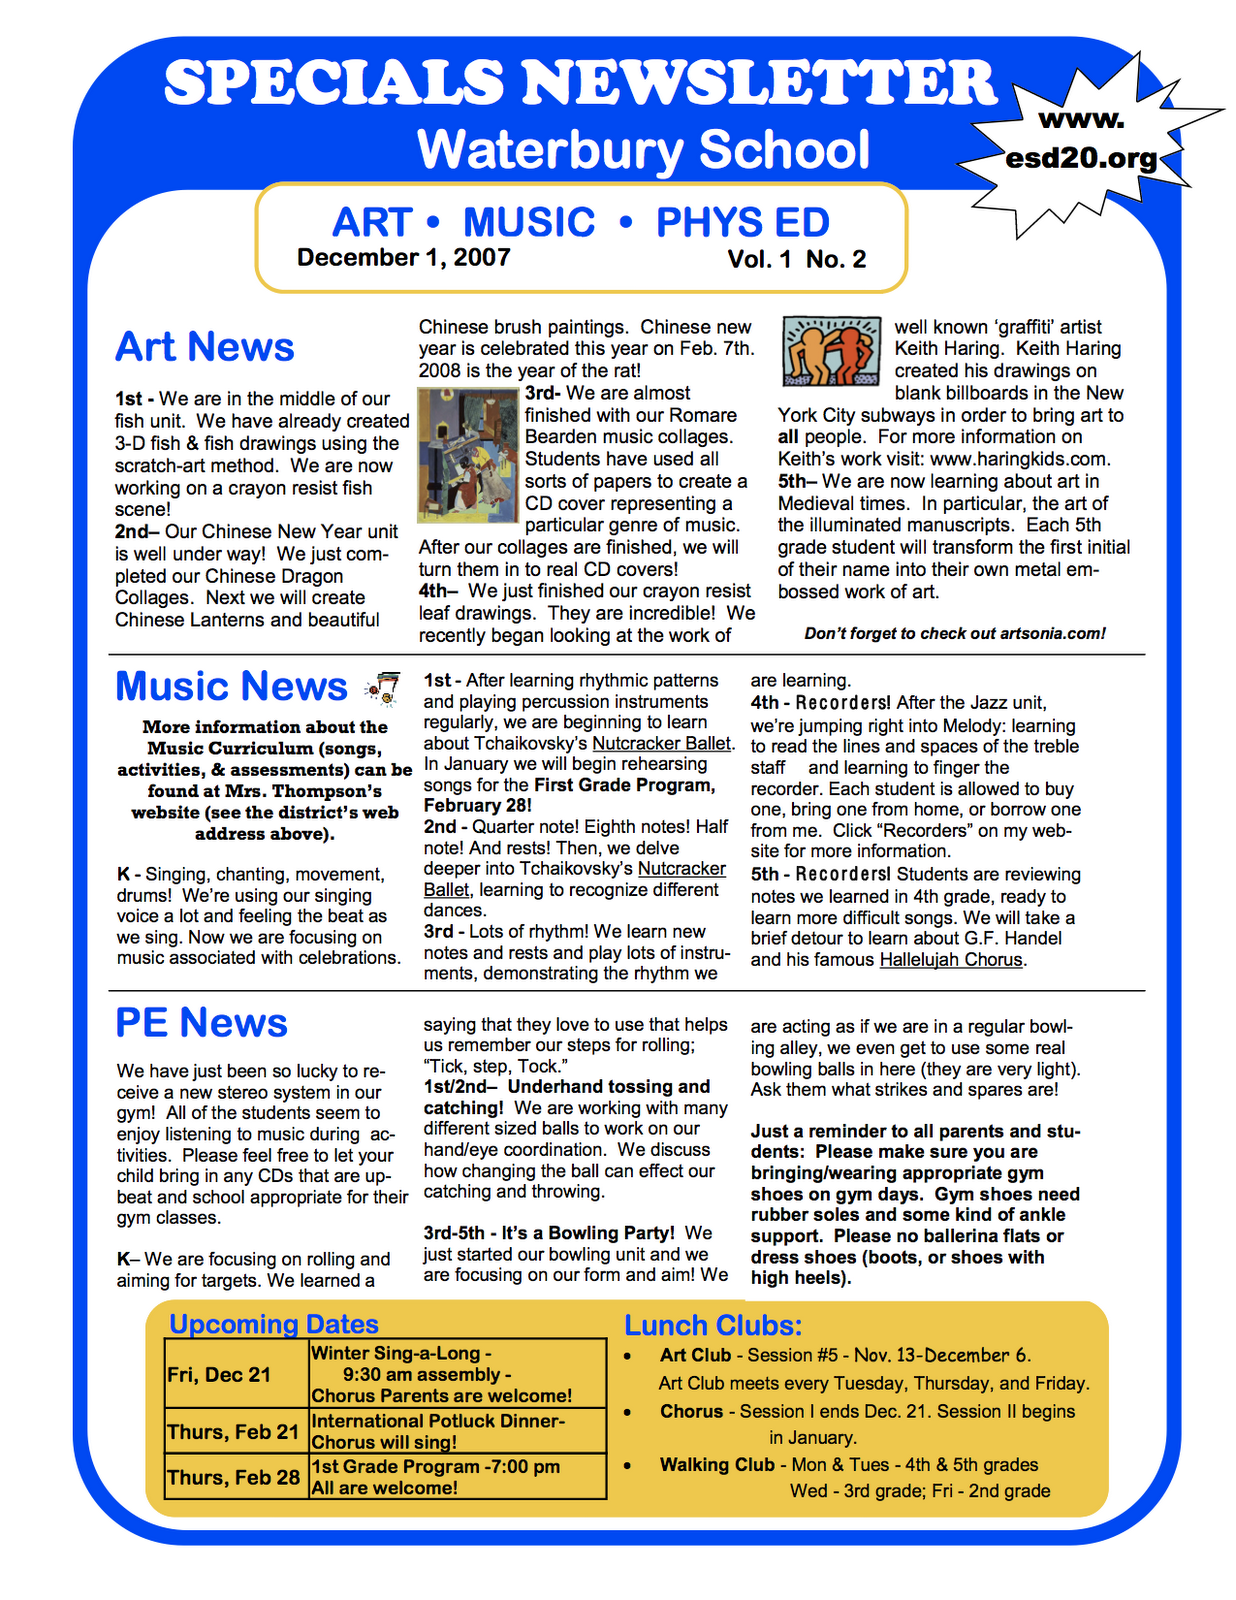 Specials Newsletters - TECHNOLOGI INFORMATION